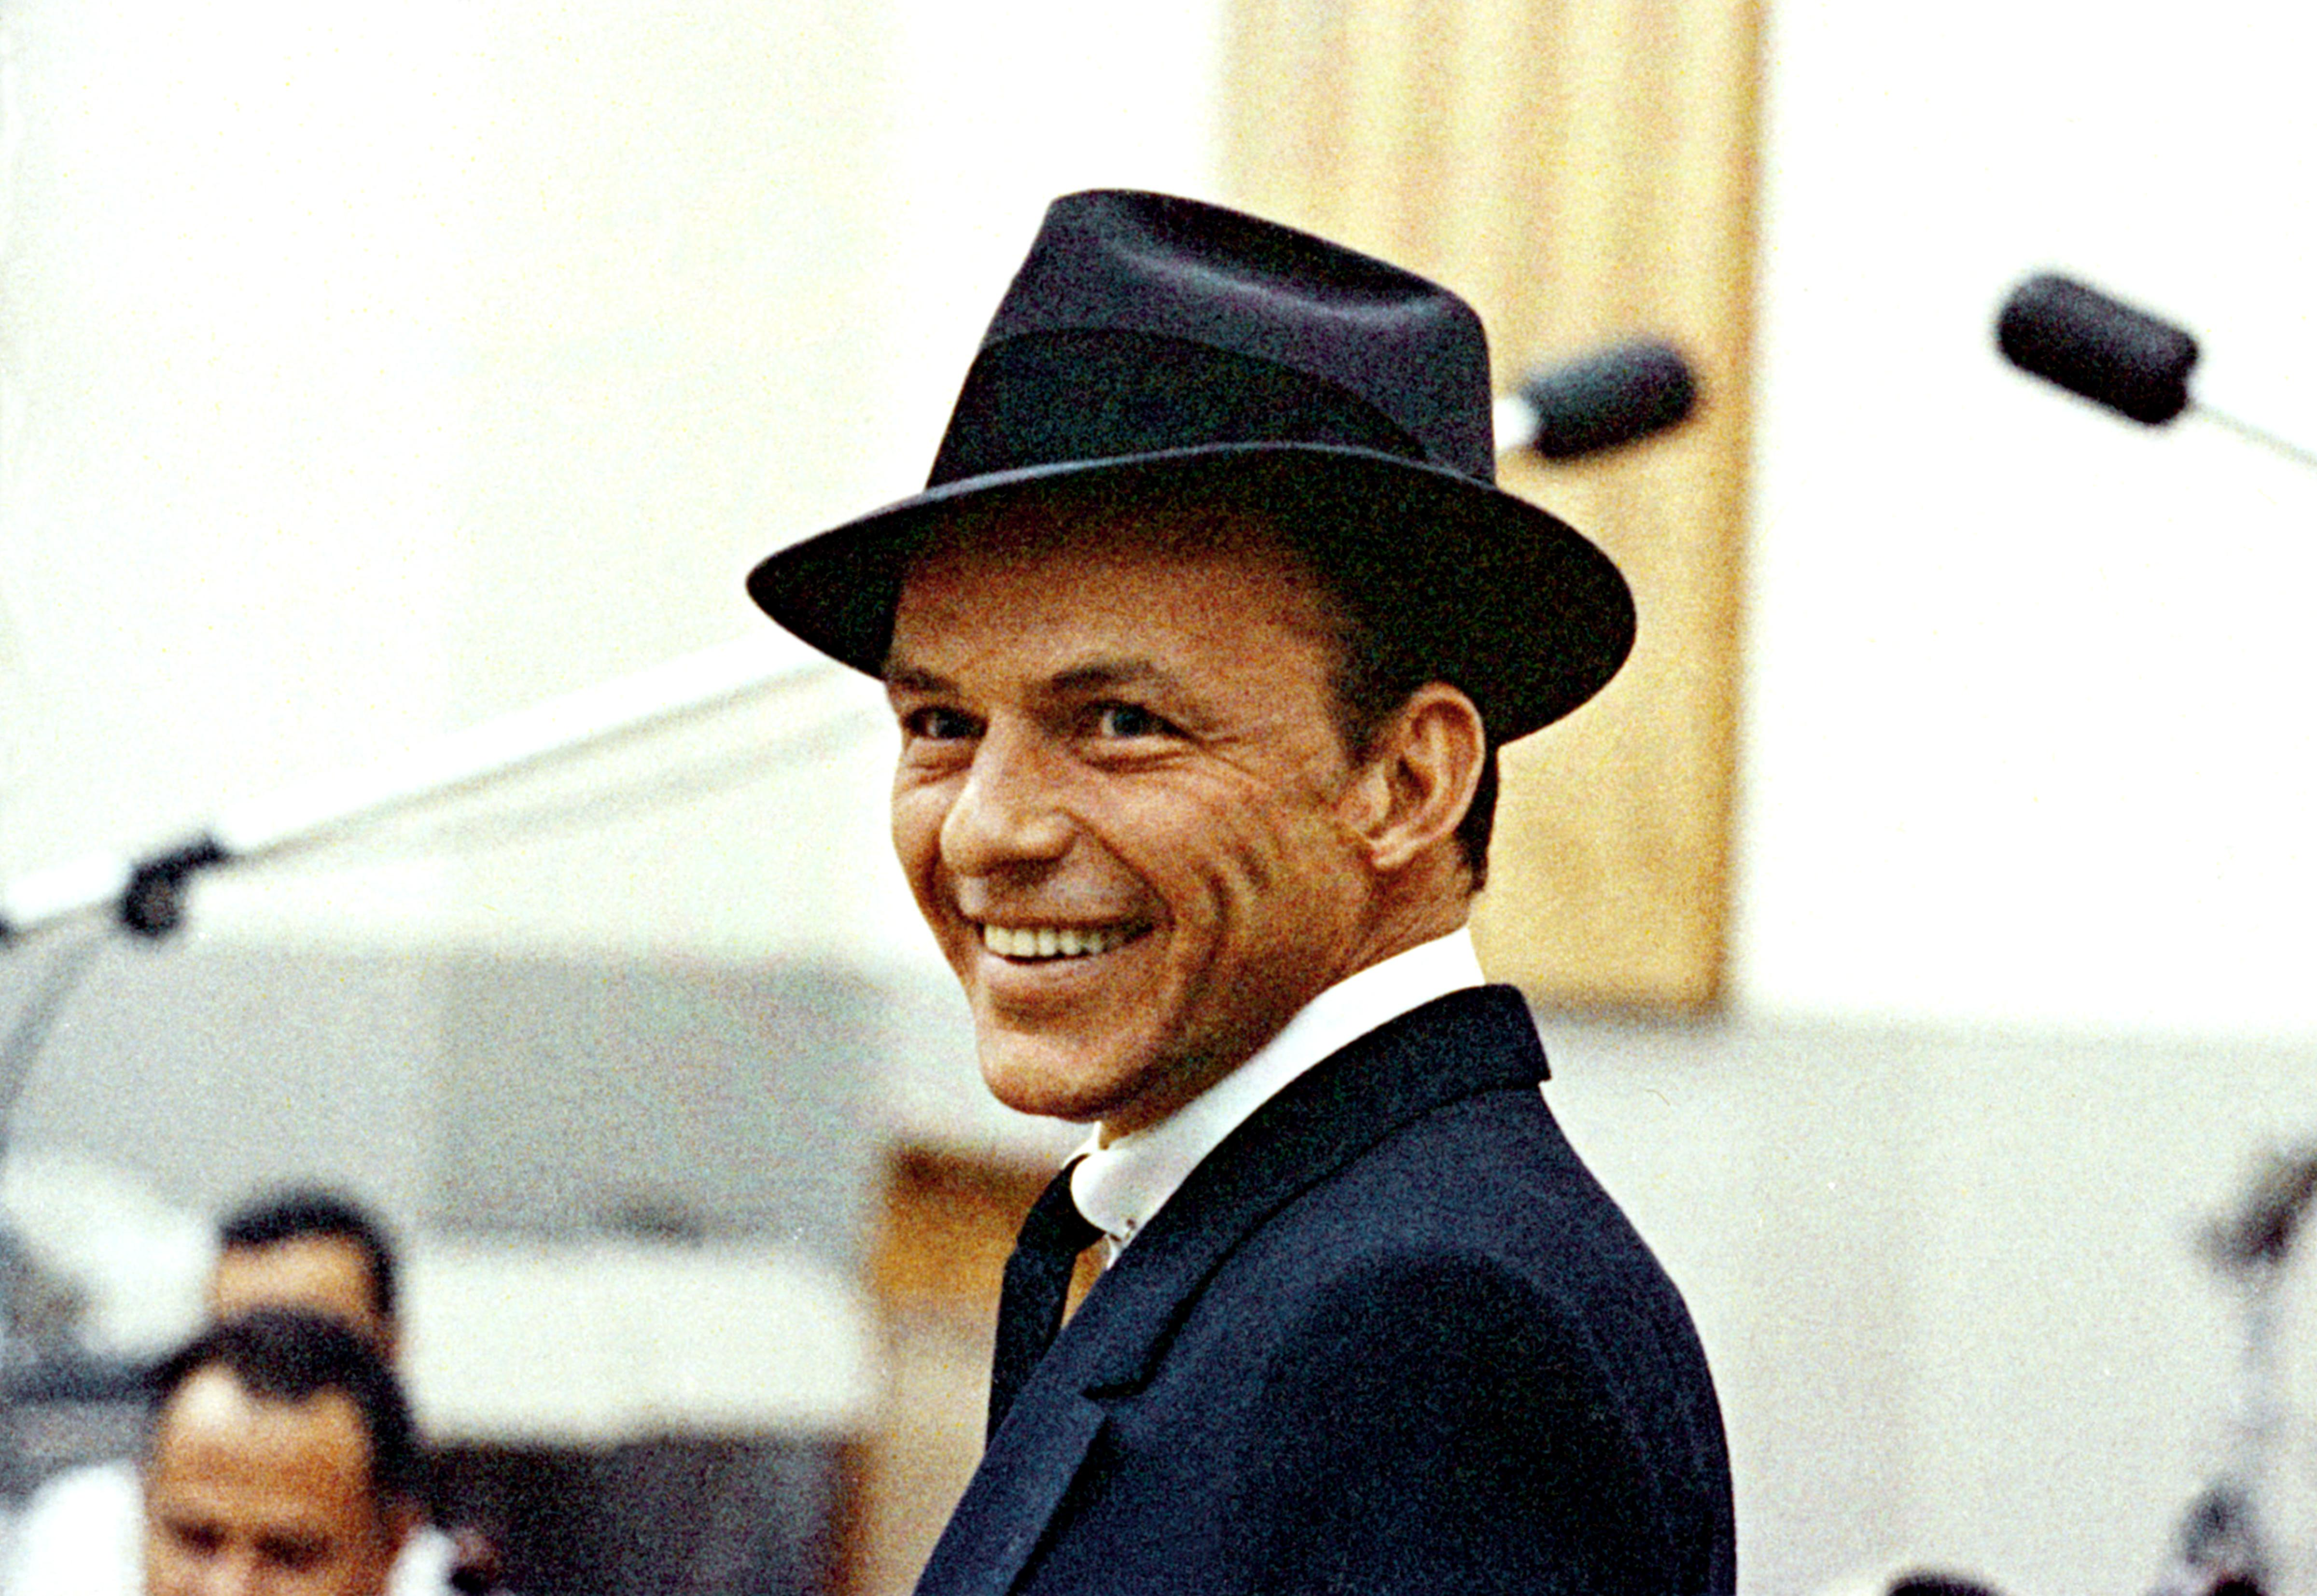 NEW FRANK SINATRA 100 APP AVAILABLE WORLDWIDE FOR  iPhone, iPad and iPod touch